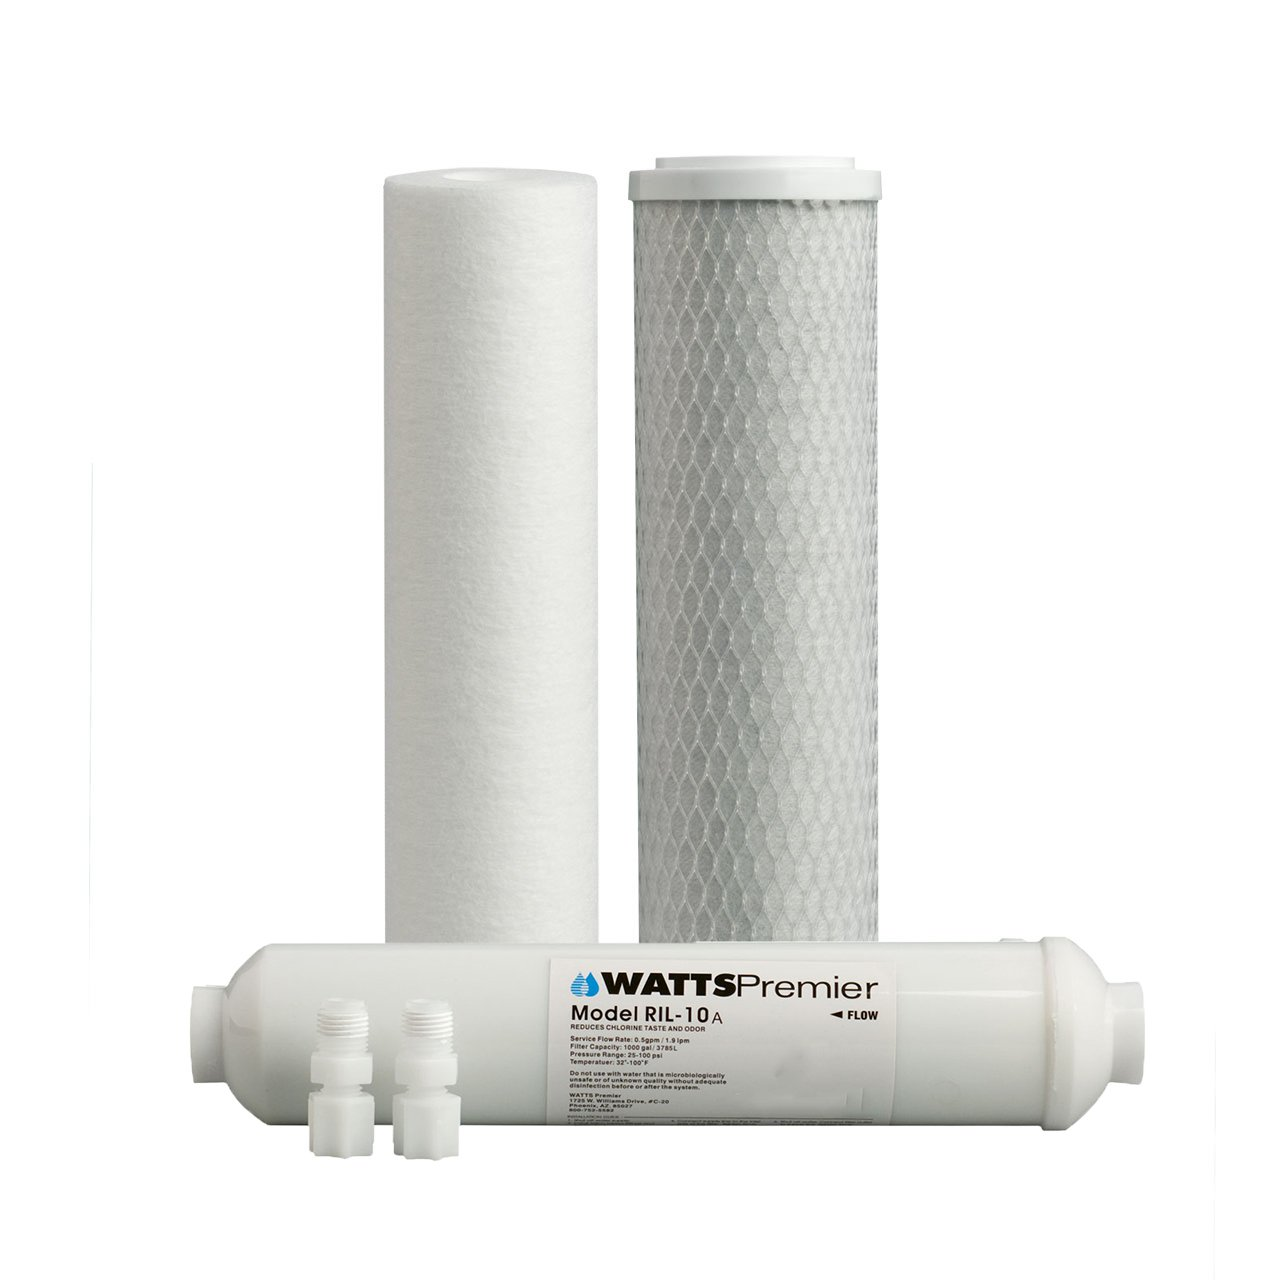 Watts Premier 560032 Four-Stage Standard Annual Filter Kit